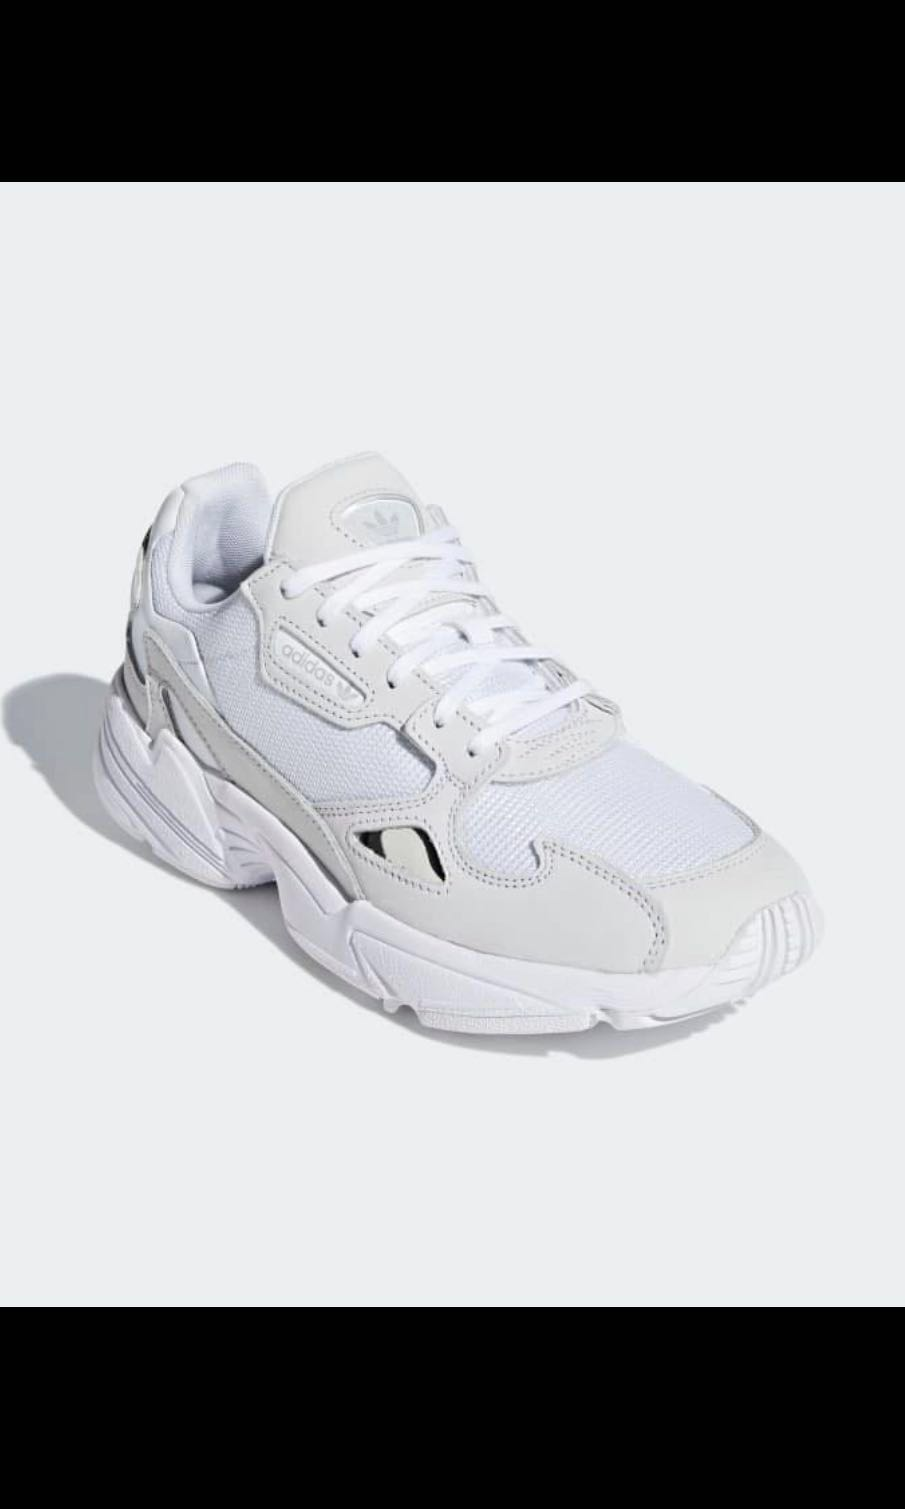 uk availability 6d3af 0a1ee Home · Women s Fashion · Shoes · Sneakers. photo photo photo photo photo